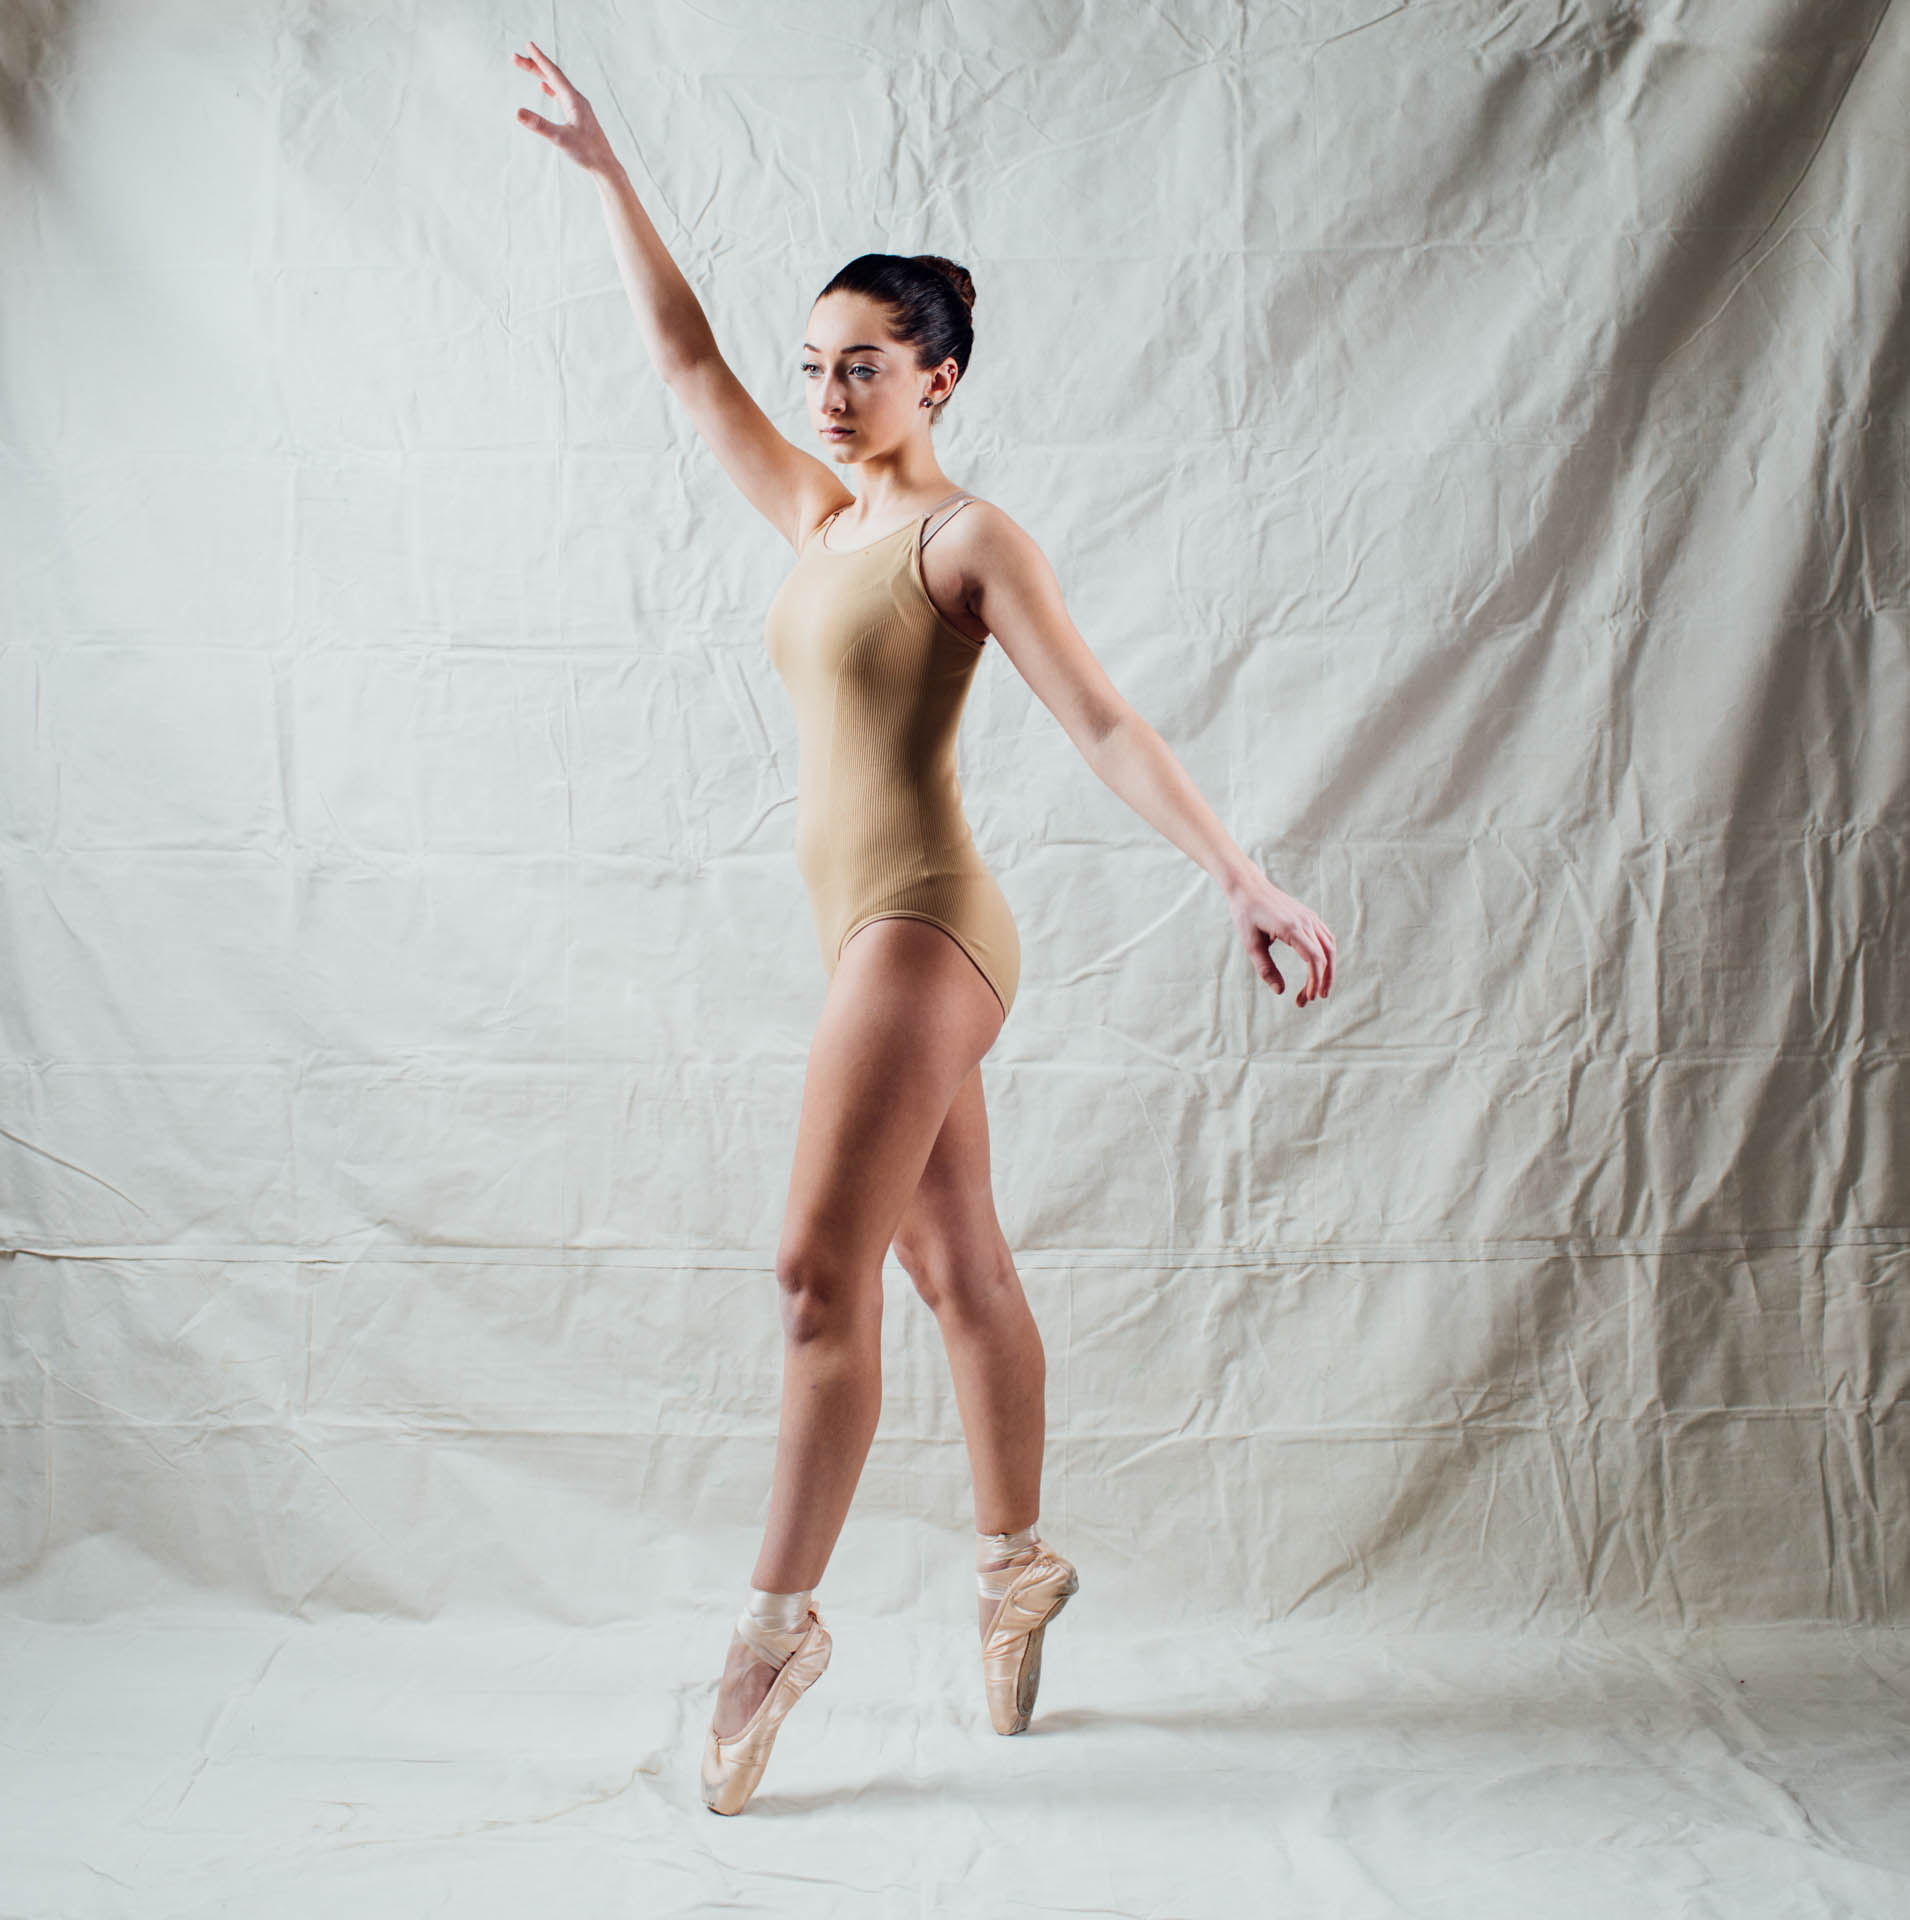 kyliah-ballerina-on-pointe-in-golden-light-9849b